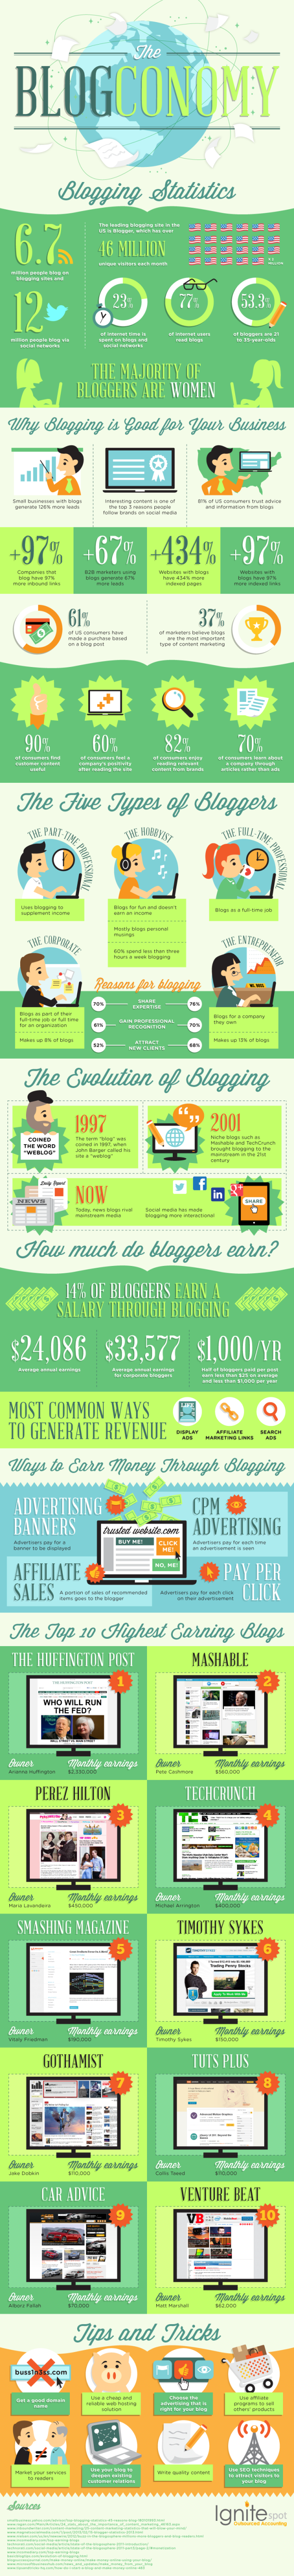 The-blogconomy-infographic